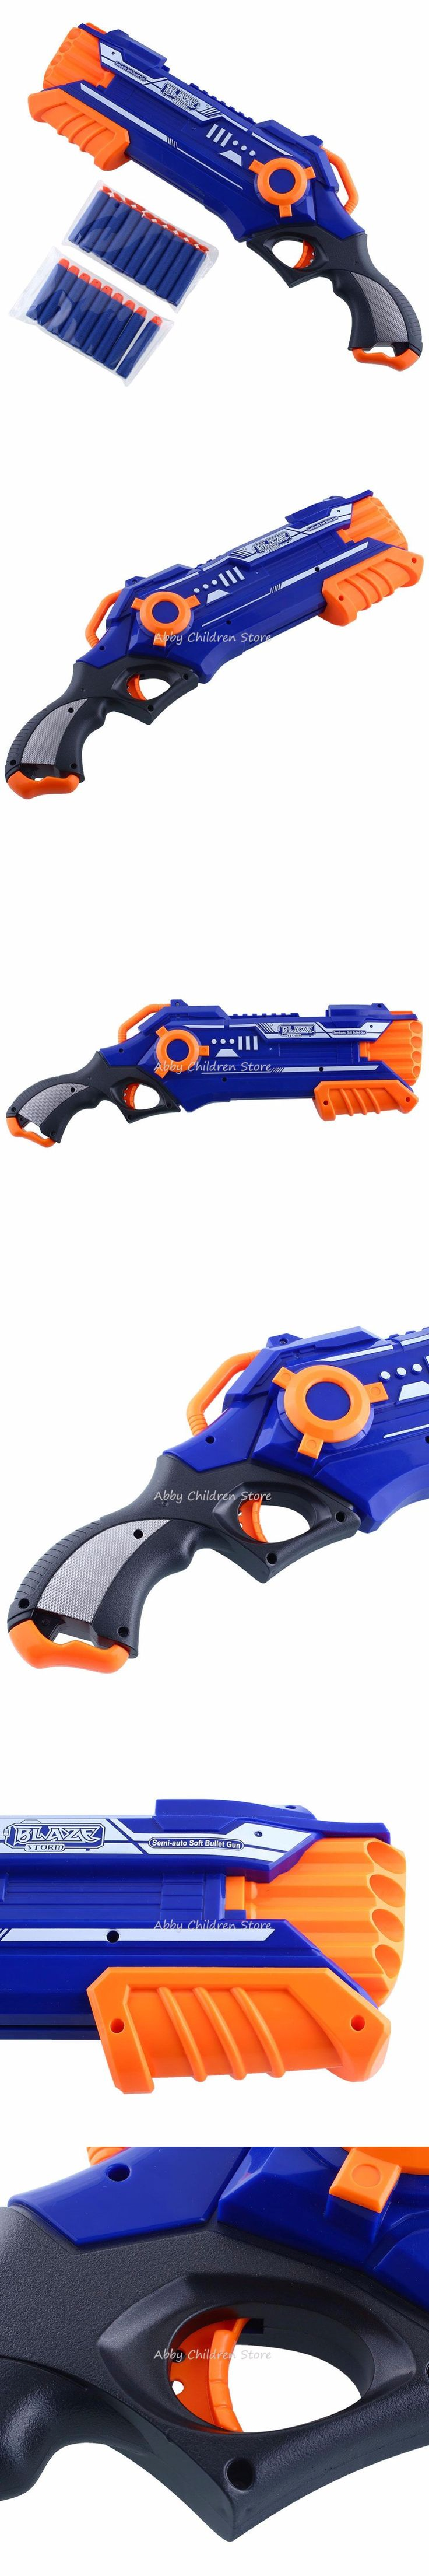 Pistol Nerf Gun Plastic Toy Gun Sniper Rifle Orbeez Arme Nerf Blaster With 12 Darts Kids Toys For Children Birthday Gifts